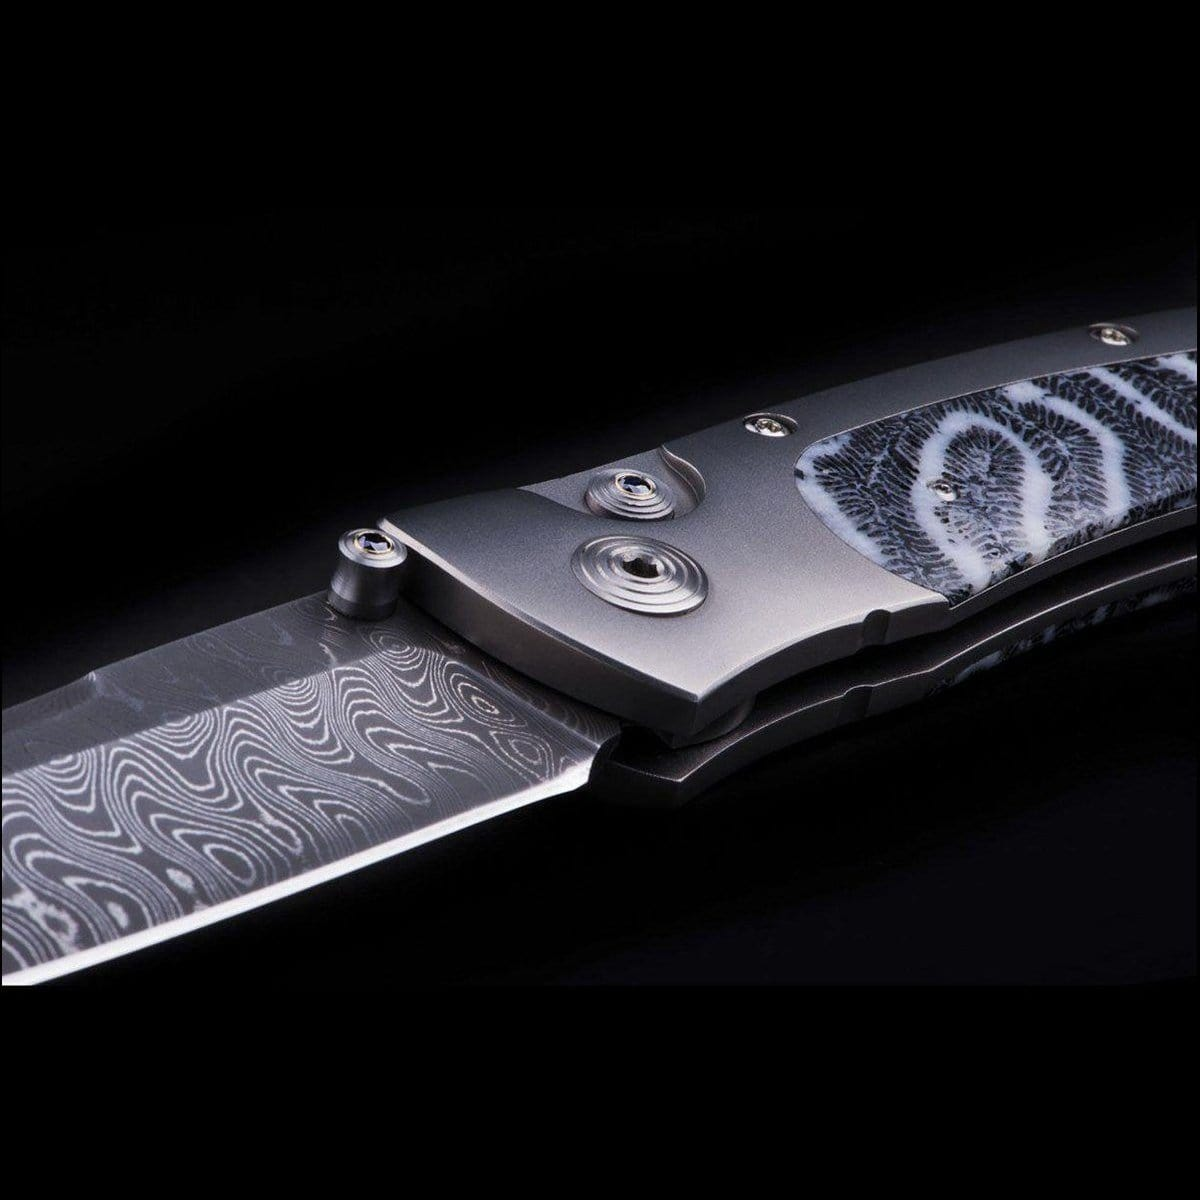 Rogue Marlin Limited Edition Knife - C15 MARLIN-William Henry-Renee Taylor Gallery